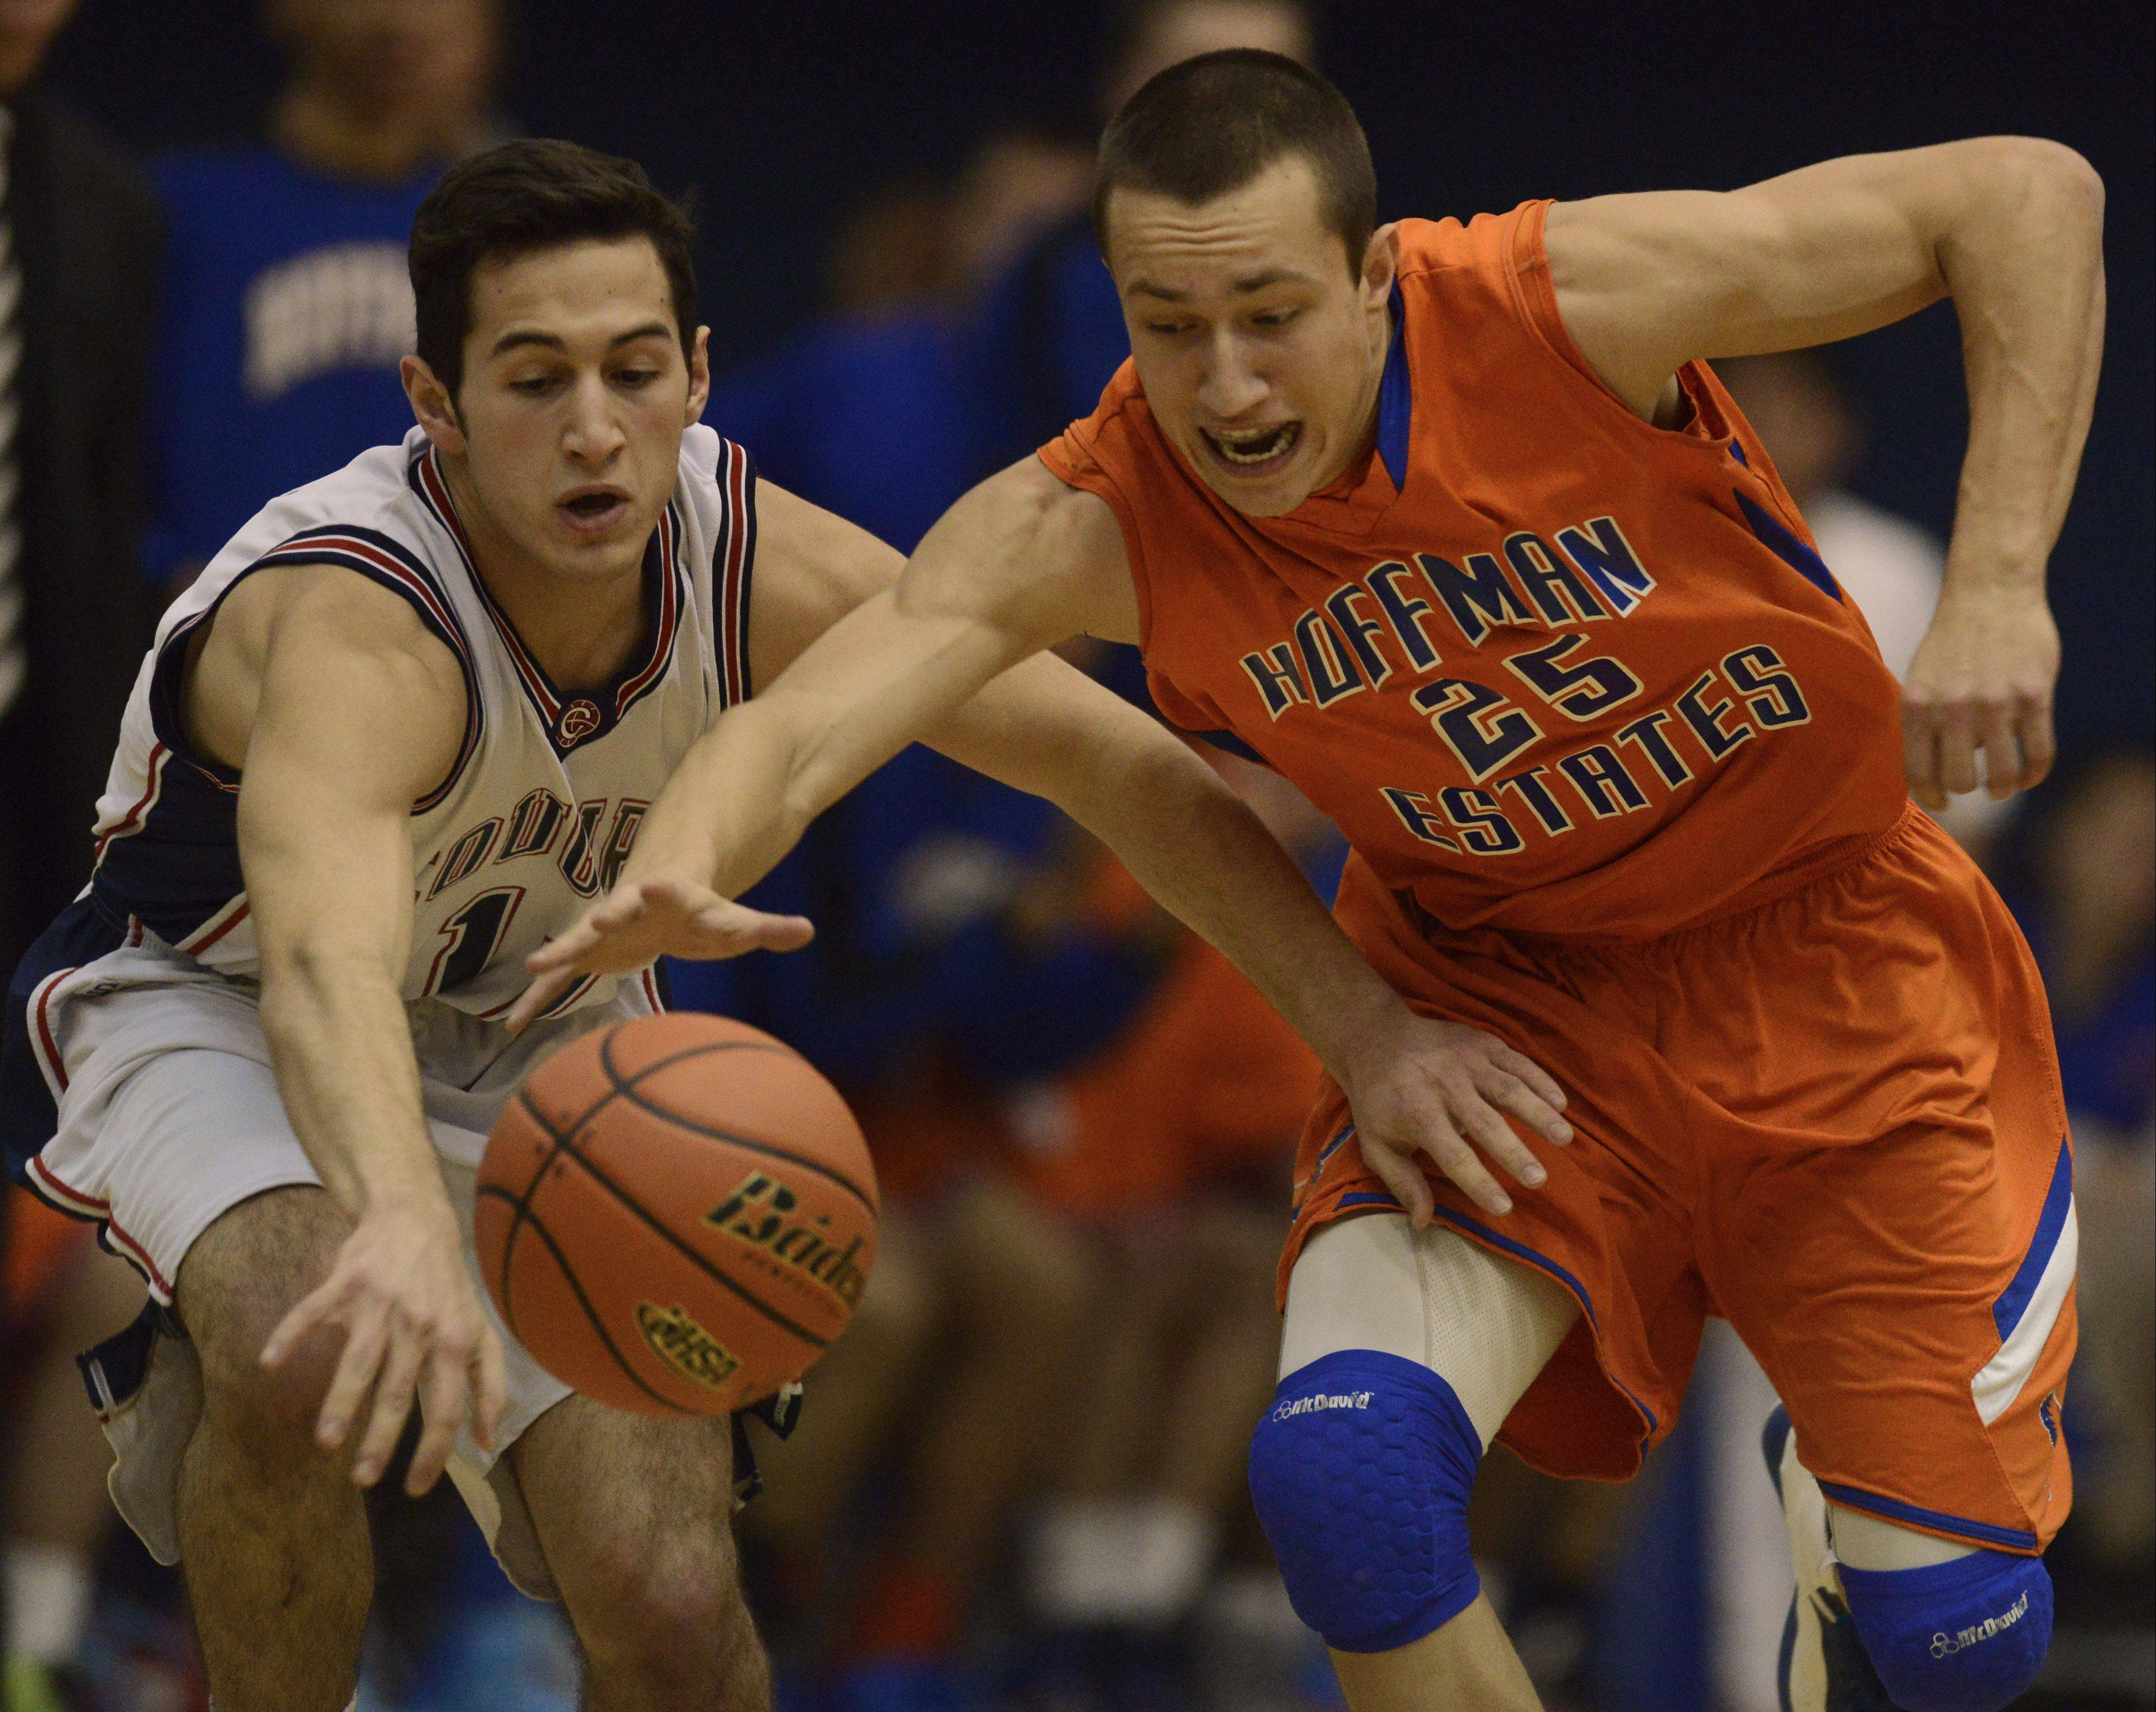 Conant's Joey Ranallo, left, attempts to steal the ball from Hoffman Estates' Jimmy Ward during Wednesday's Class 4A regional quarterfinal at Hoffman Estates.